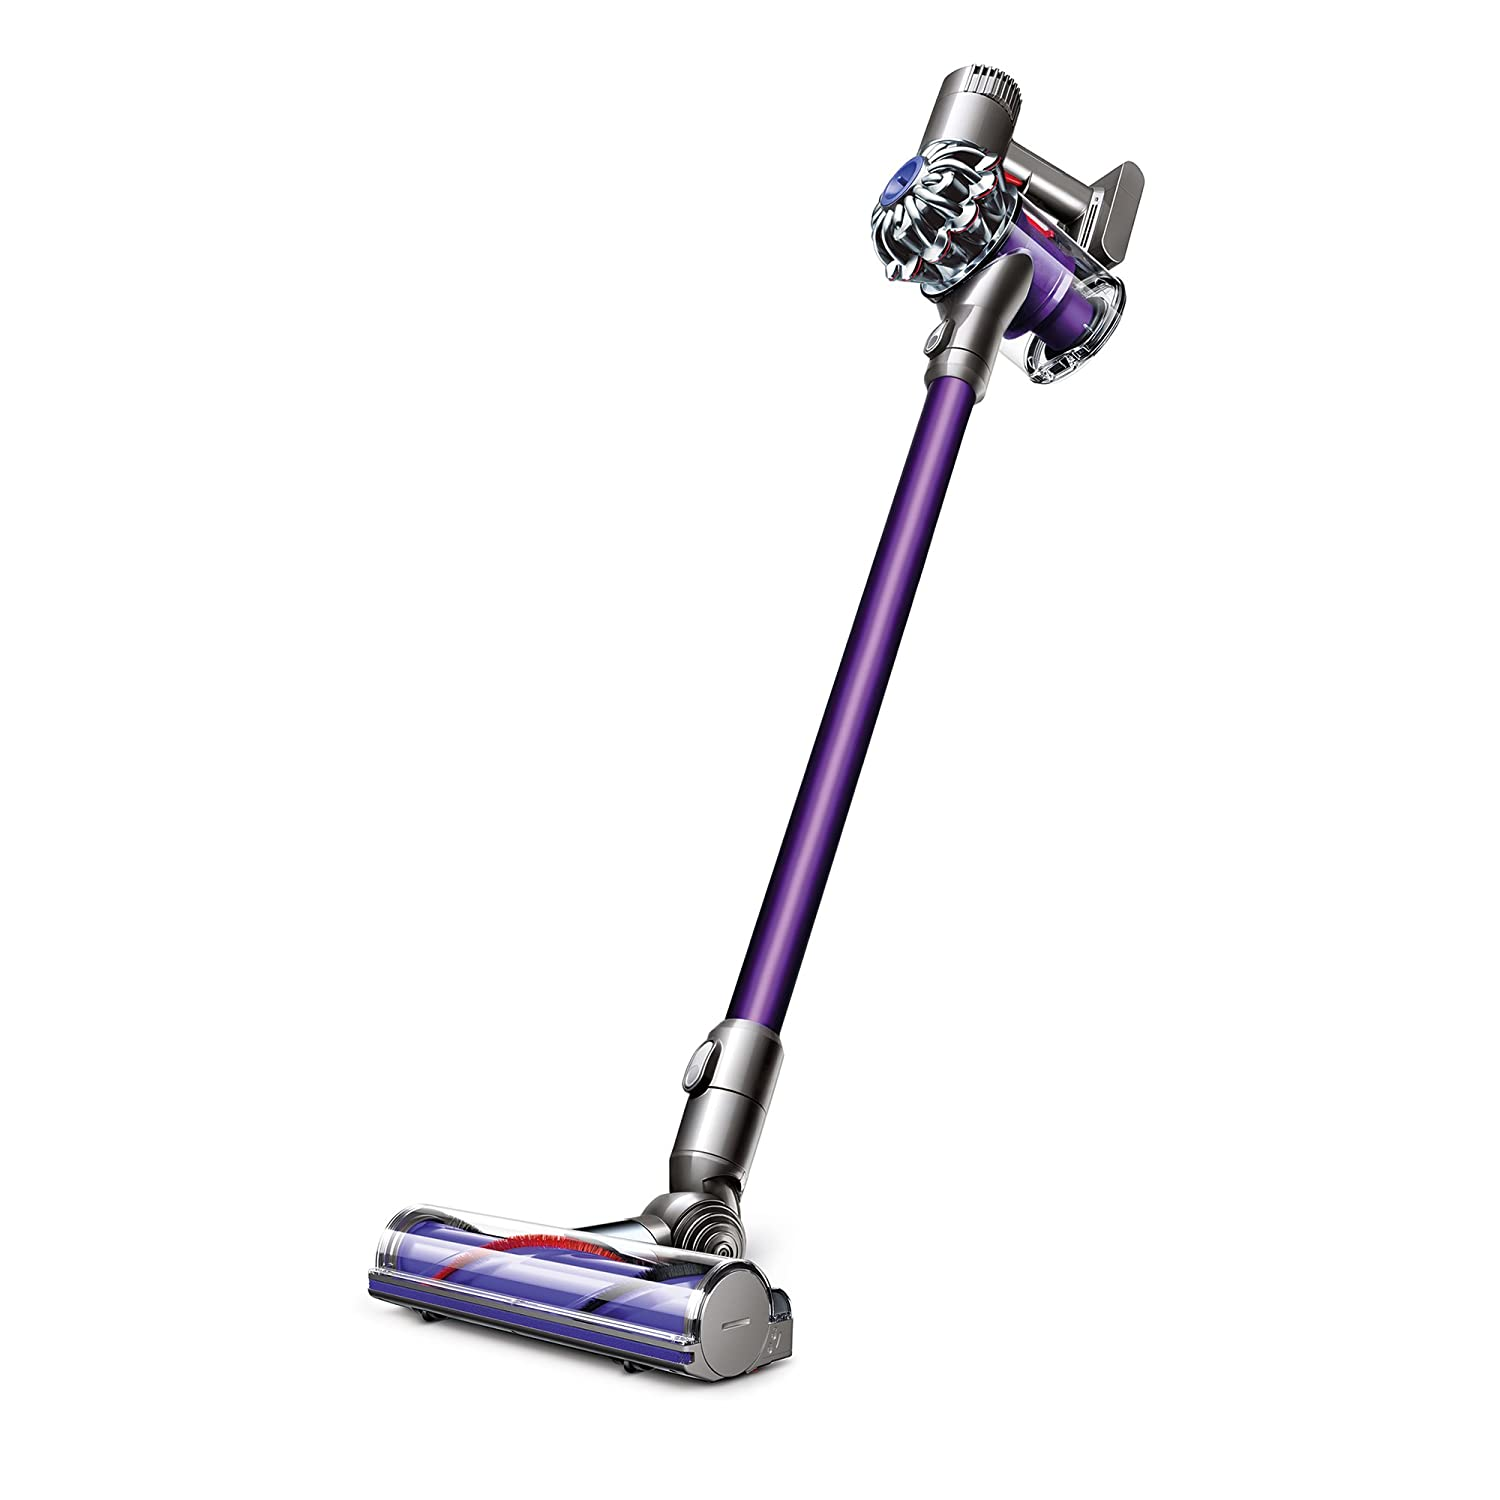 dyson v6 animal cordless vacuum purple silver brand new v6animal1 885609004808 ebay. Black Bedroom Furniture Sets. Home Design Ideas